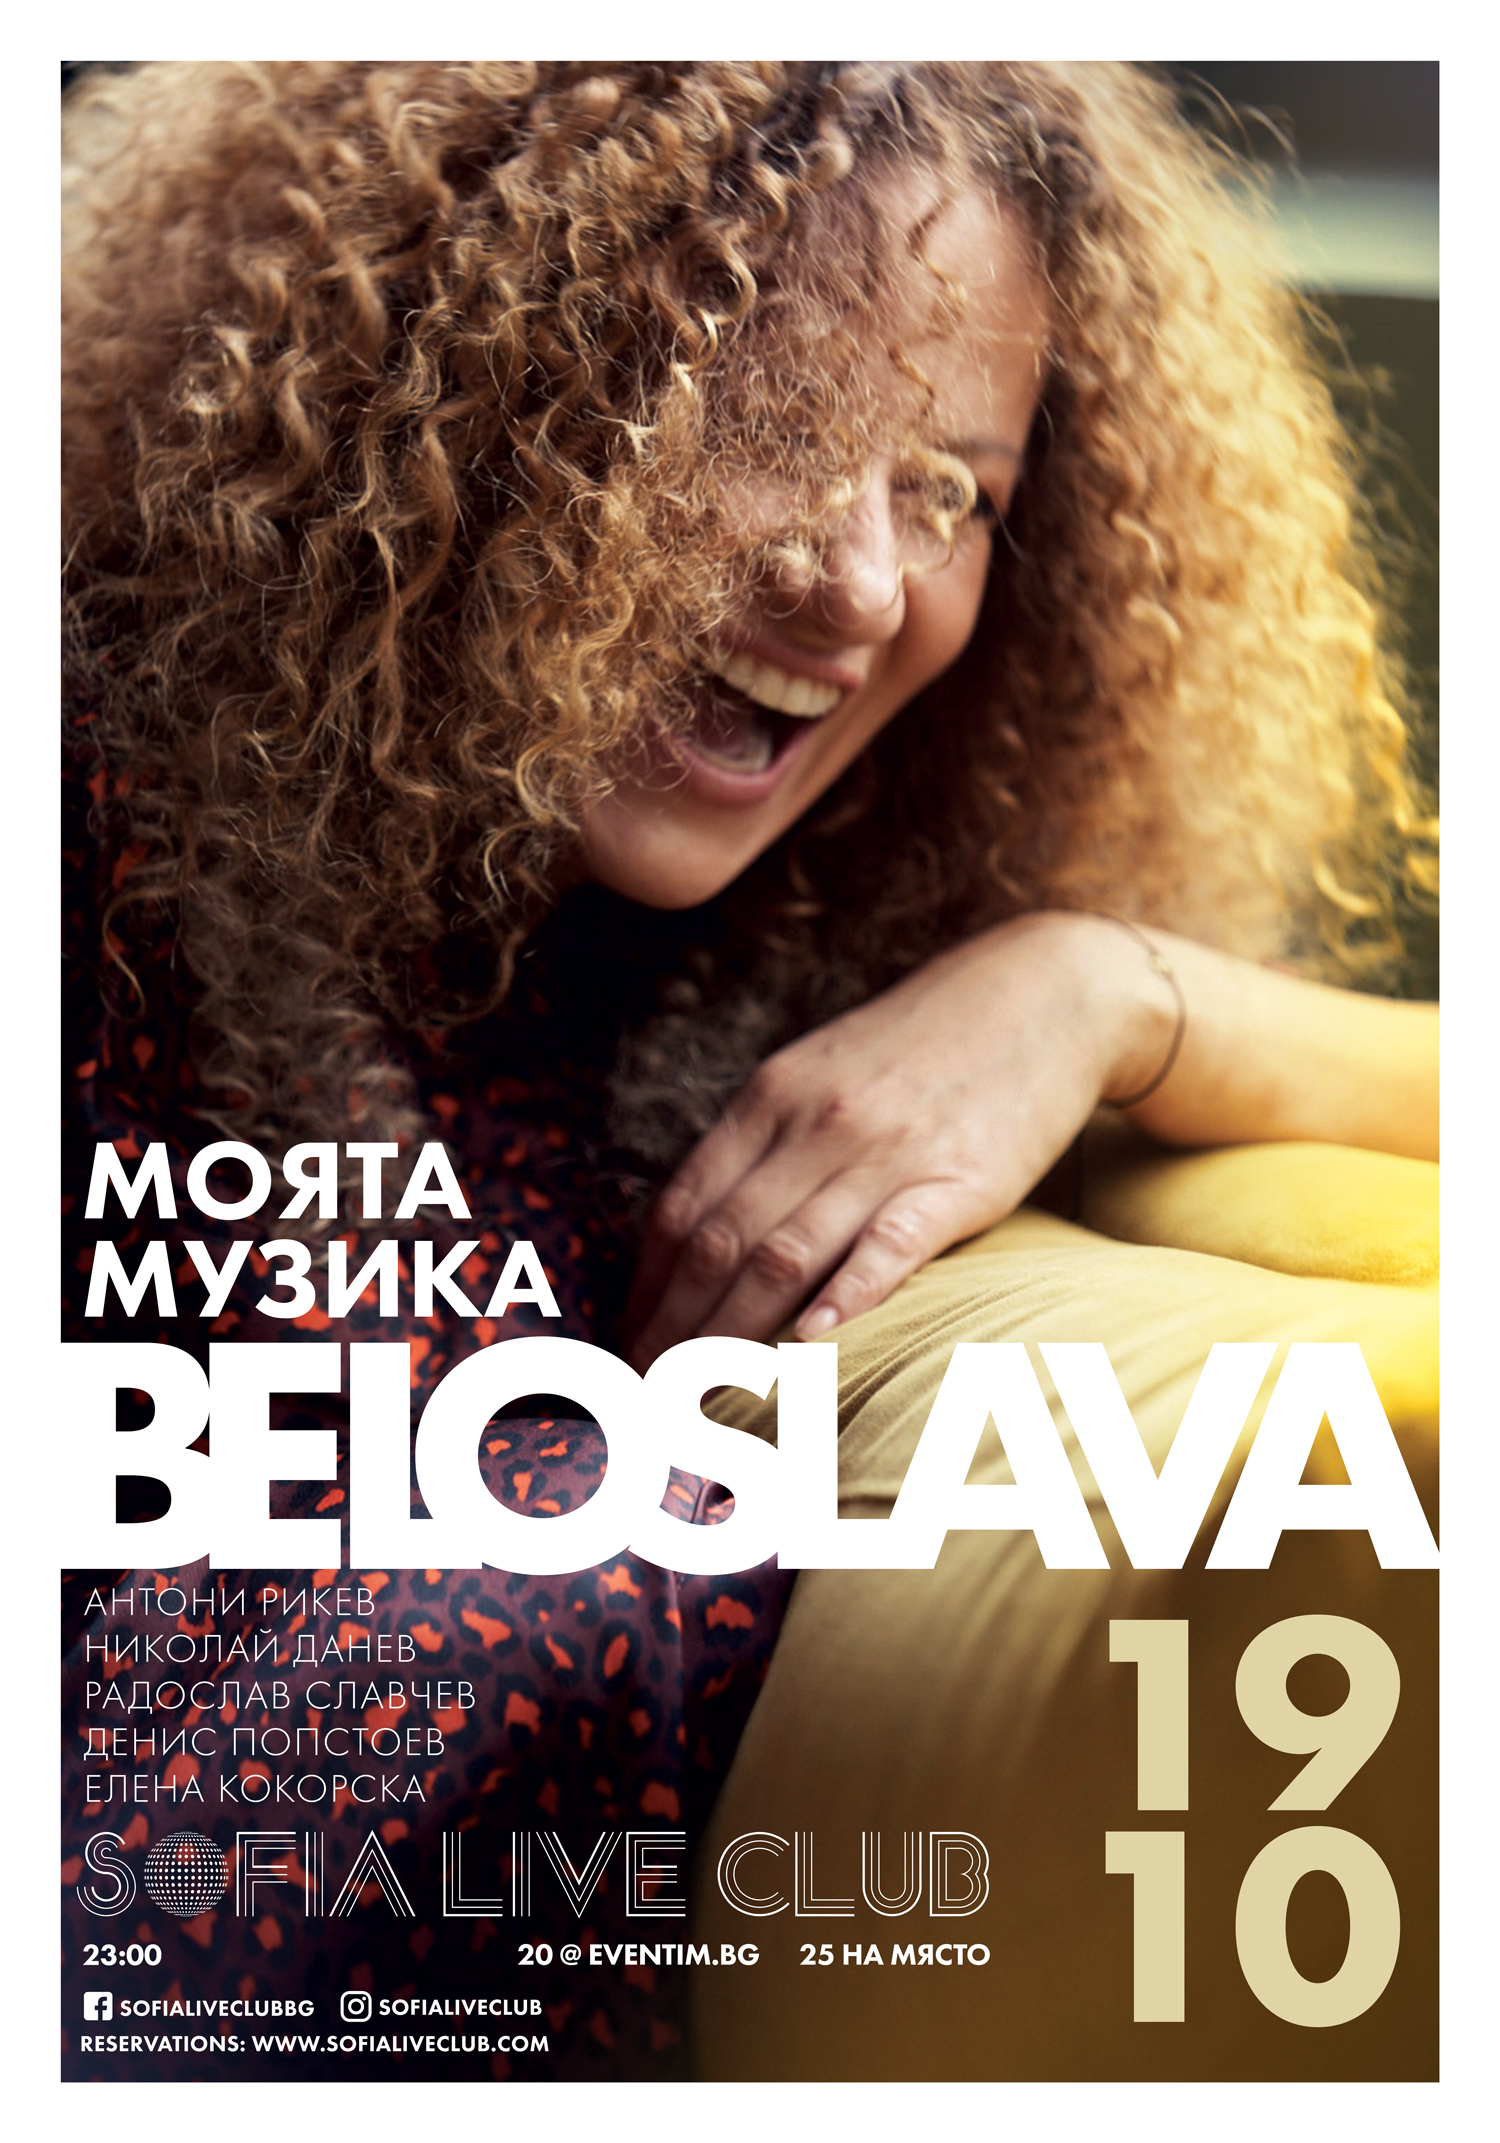 Beloslava live in Sofia Live Club